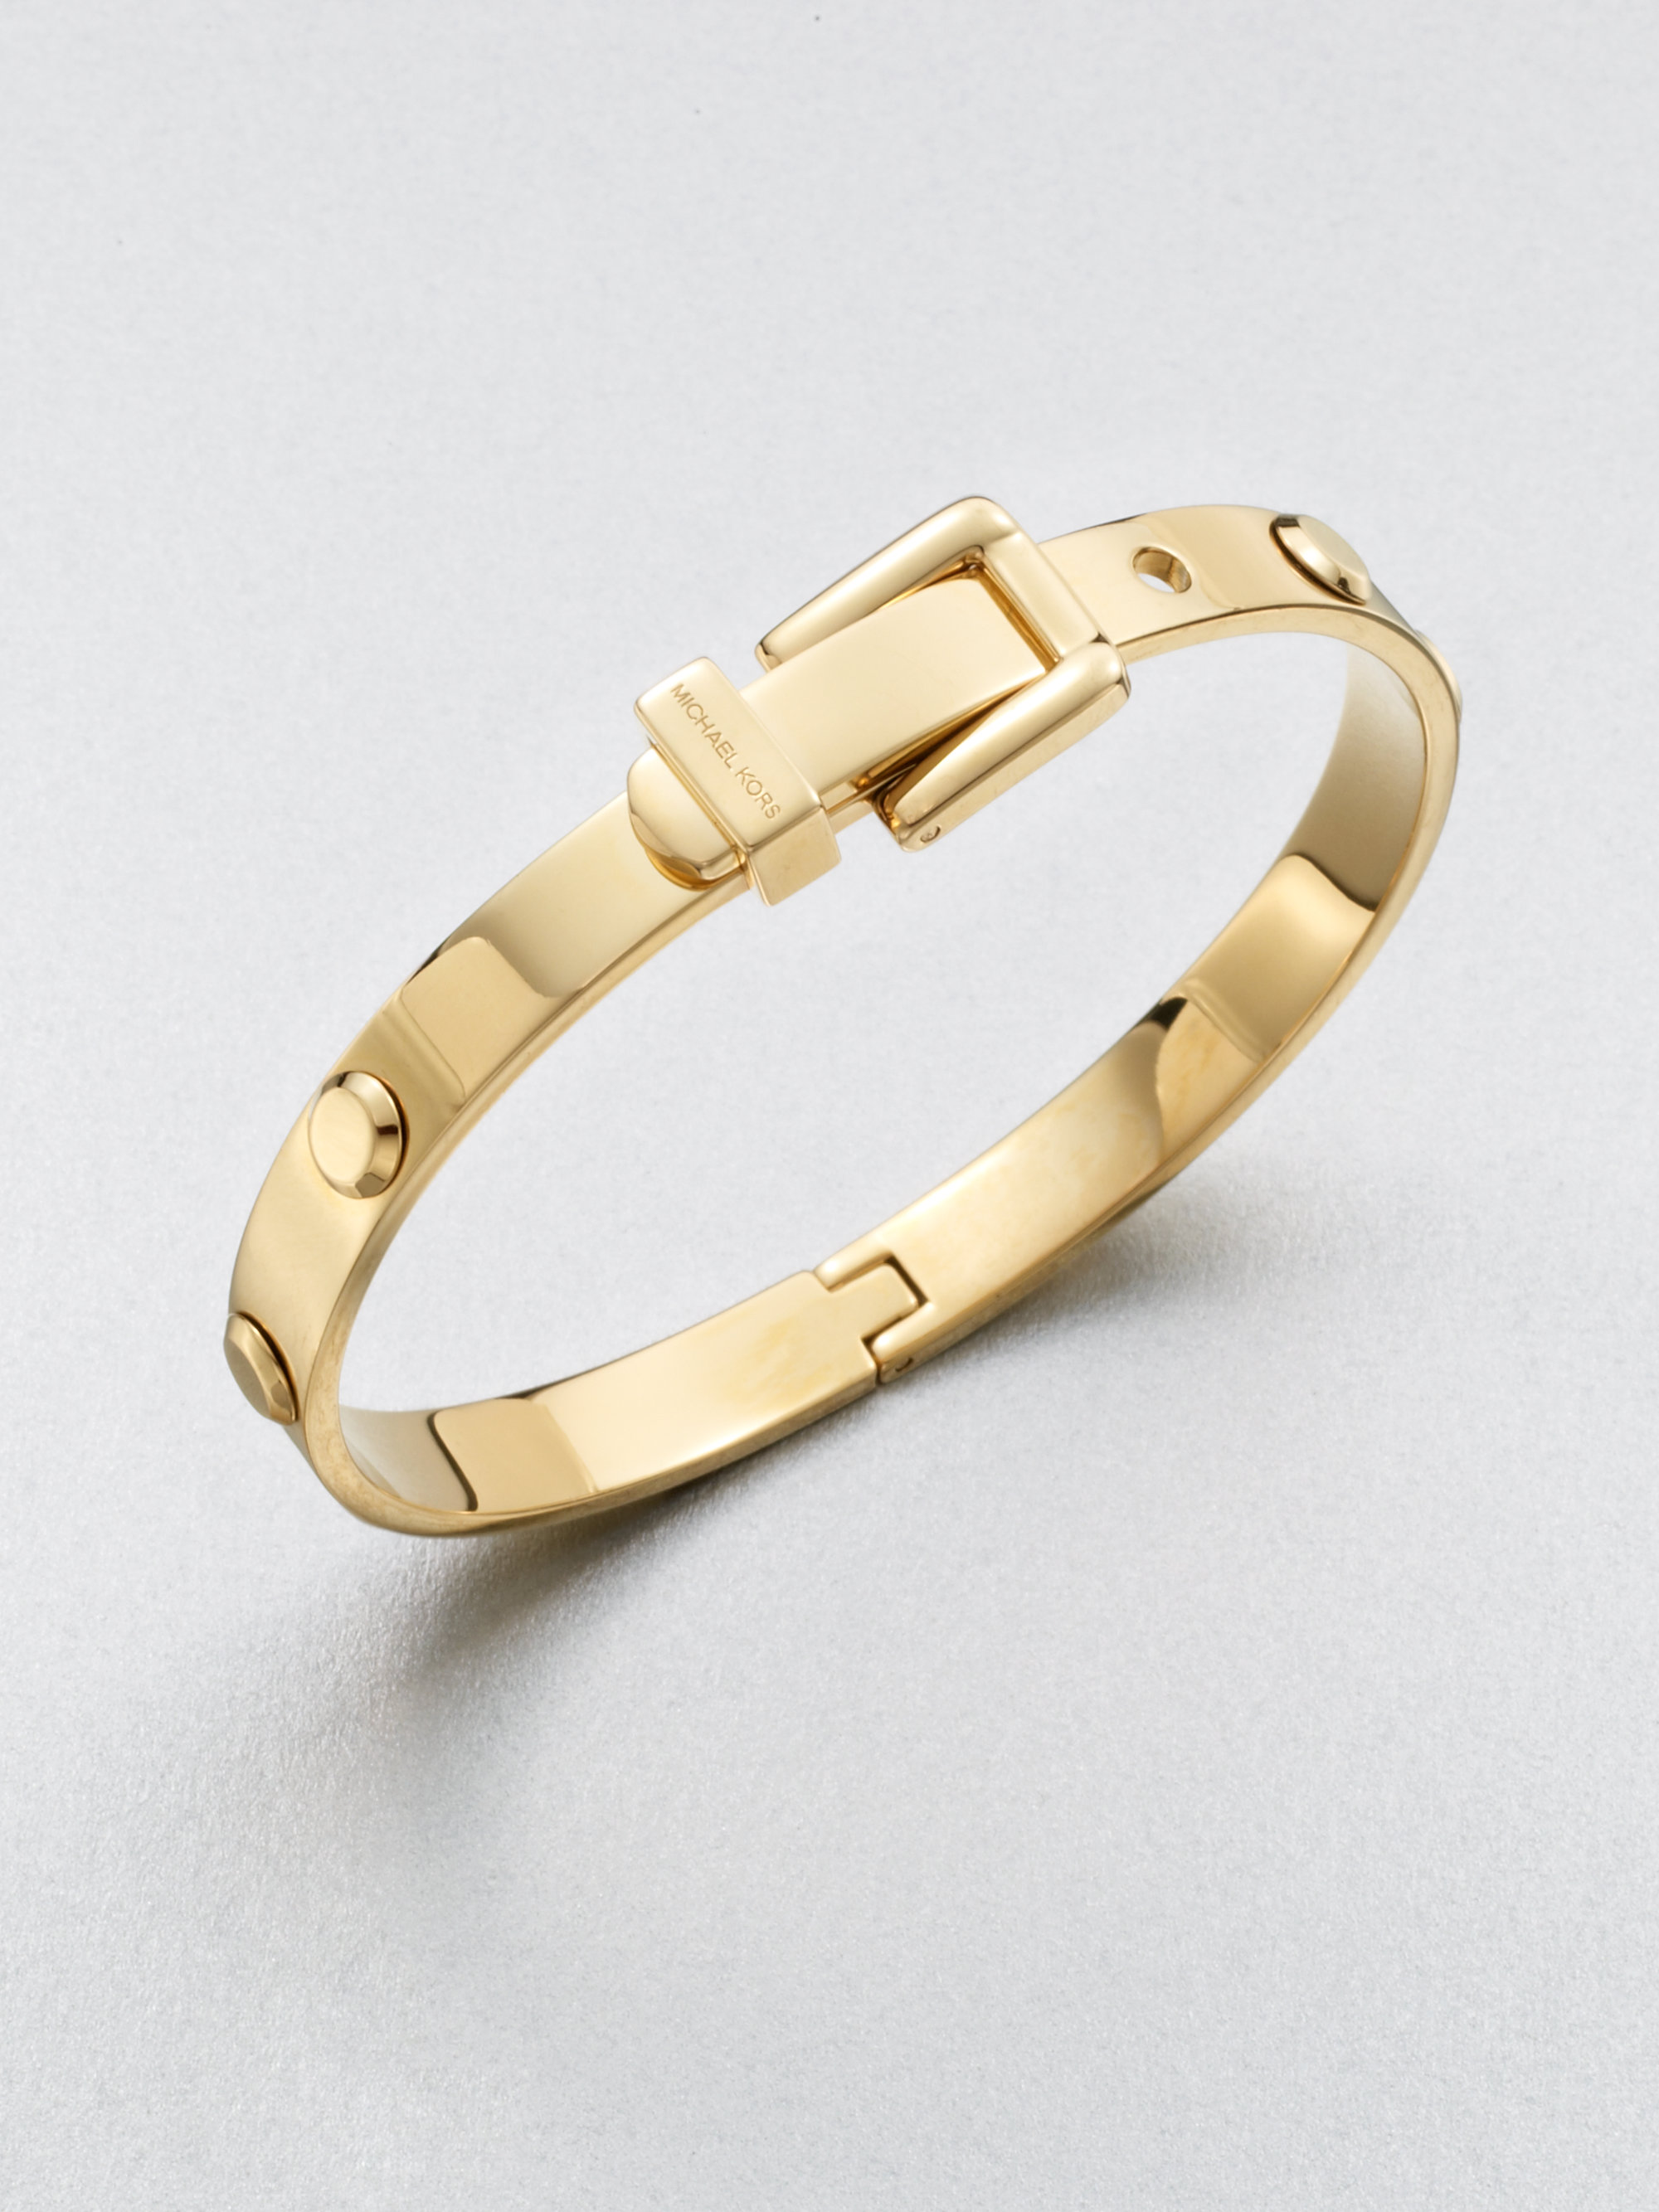 michael kors astor buckled rivet bangle braceletgoldtone